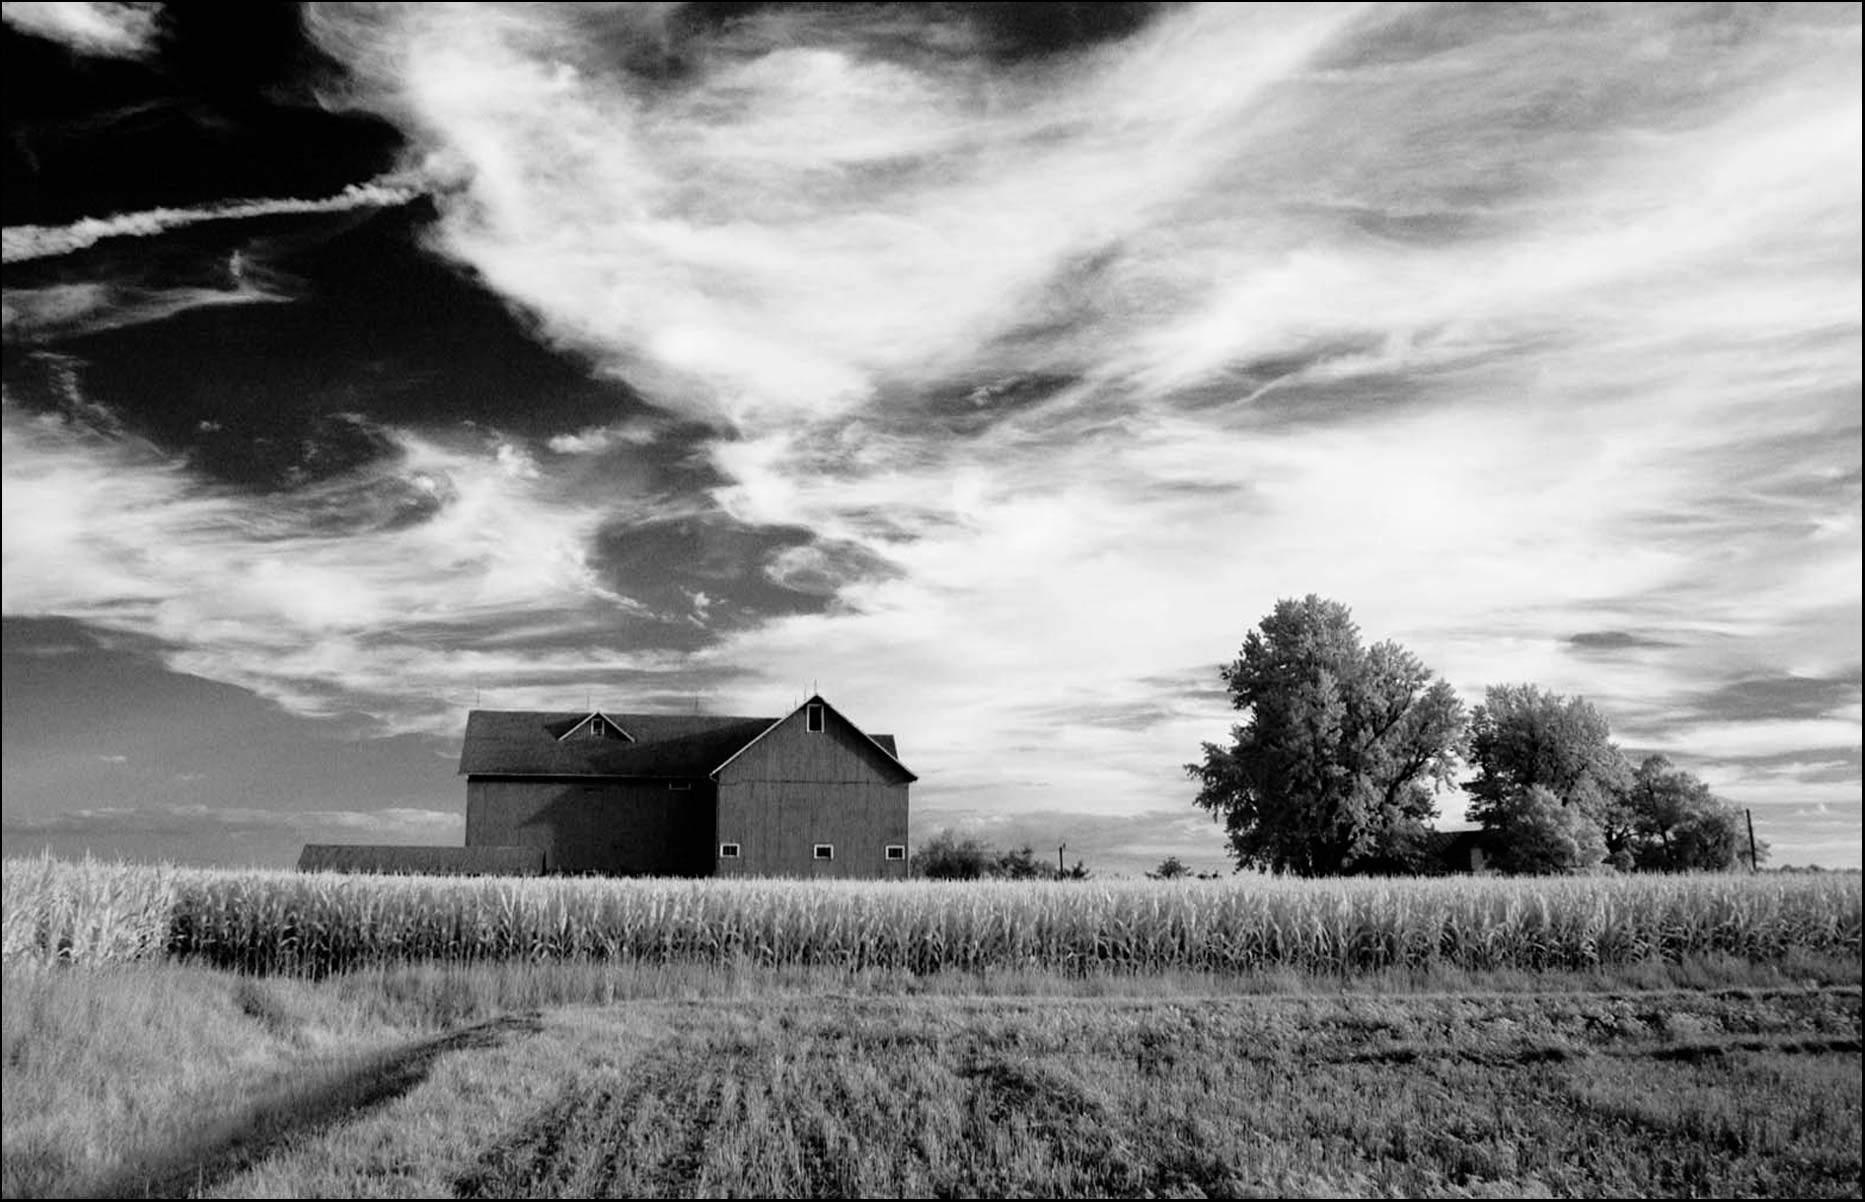 Black and White Infrared image of a barn in Ohio